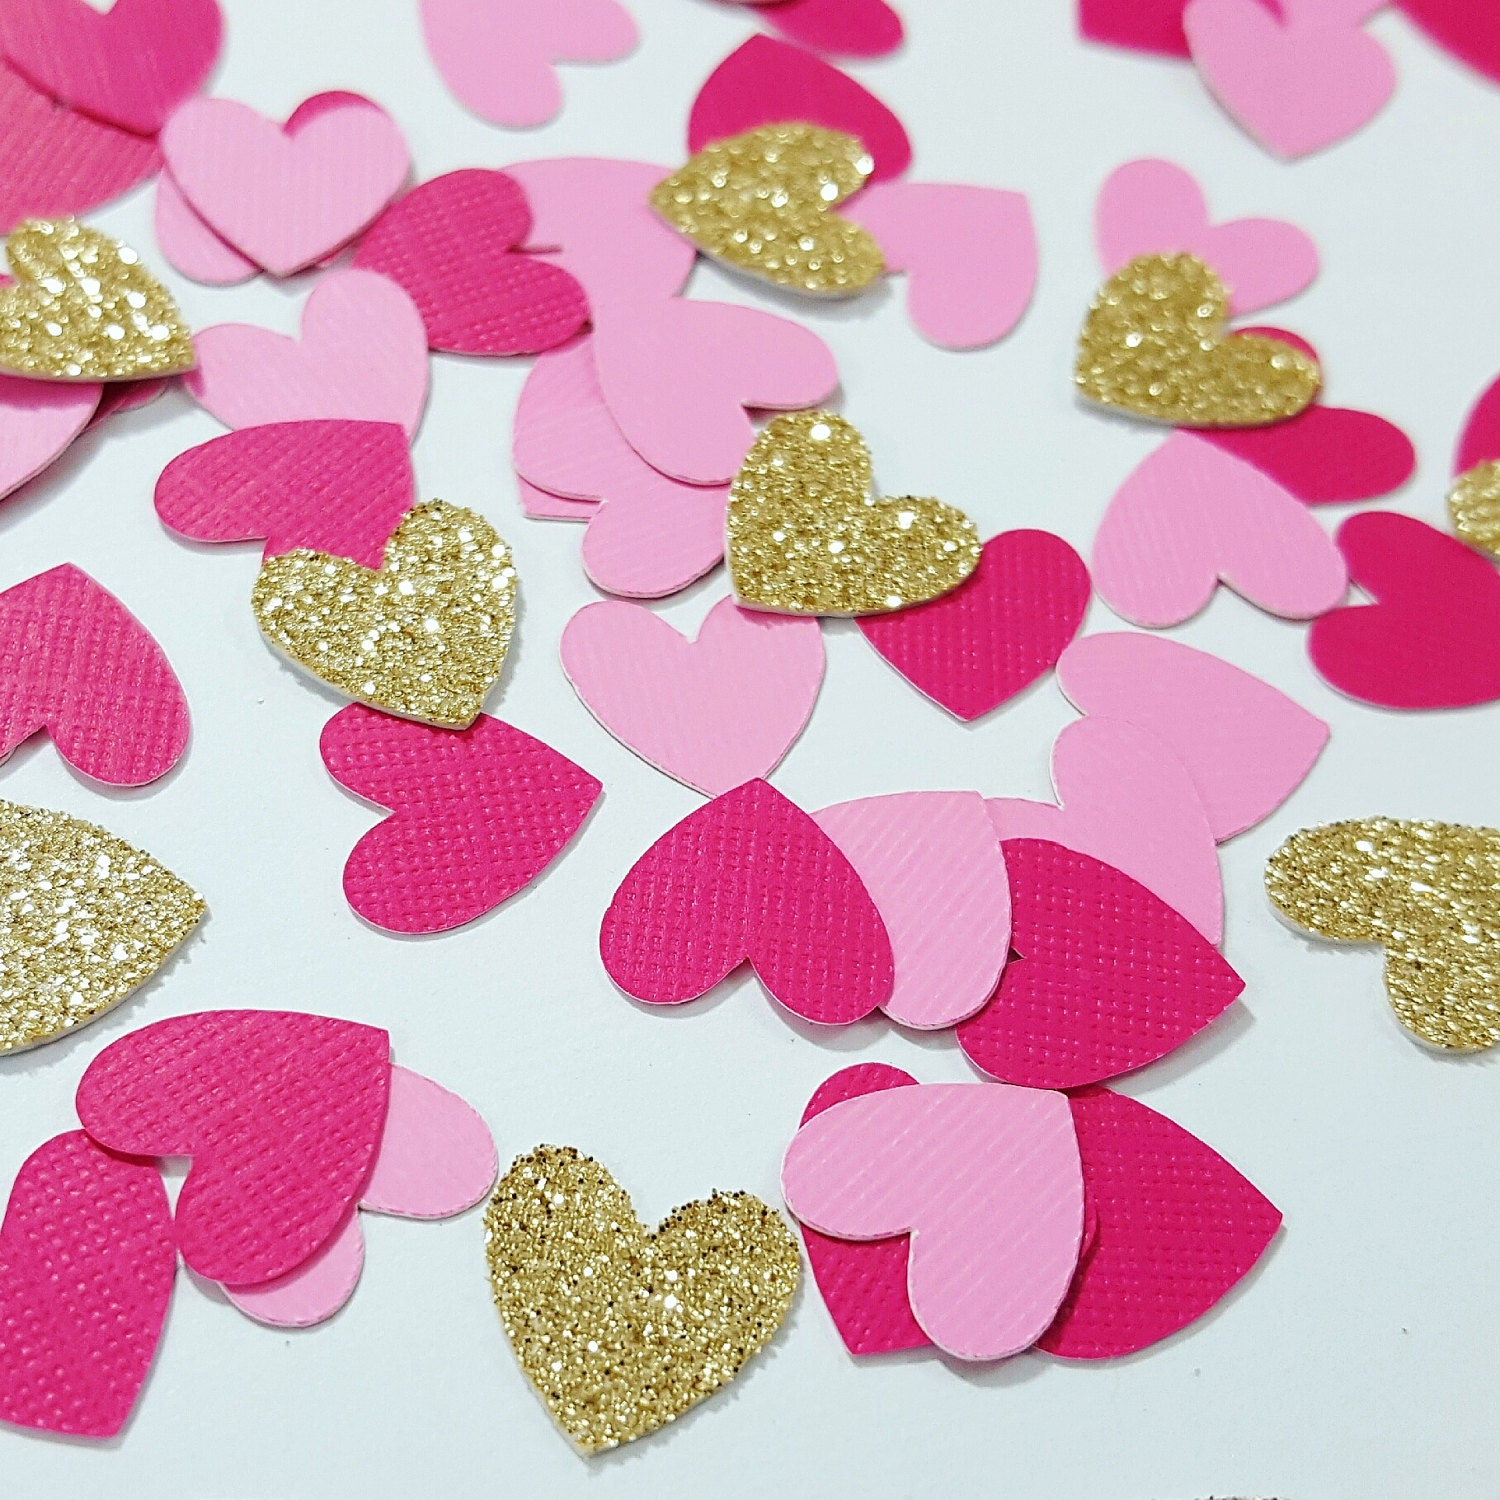 High Quality Light Pink, Dark Pink, Gold Or Silver Glitter Heart Confetti   Valentineu0027s  Day Decorations   Bridal Shower Decorations   Wedding Decorations